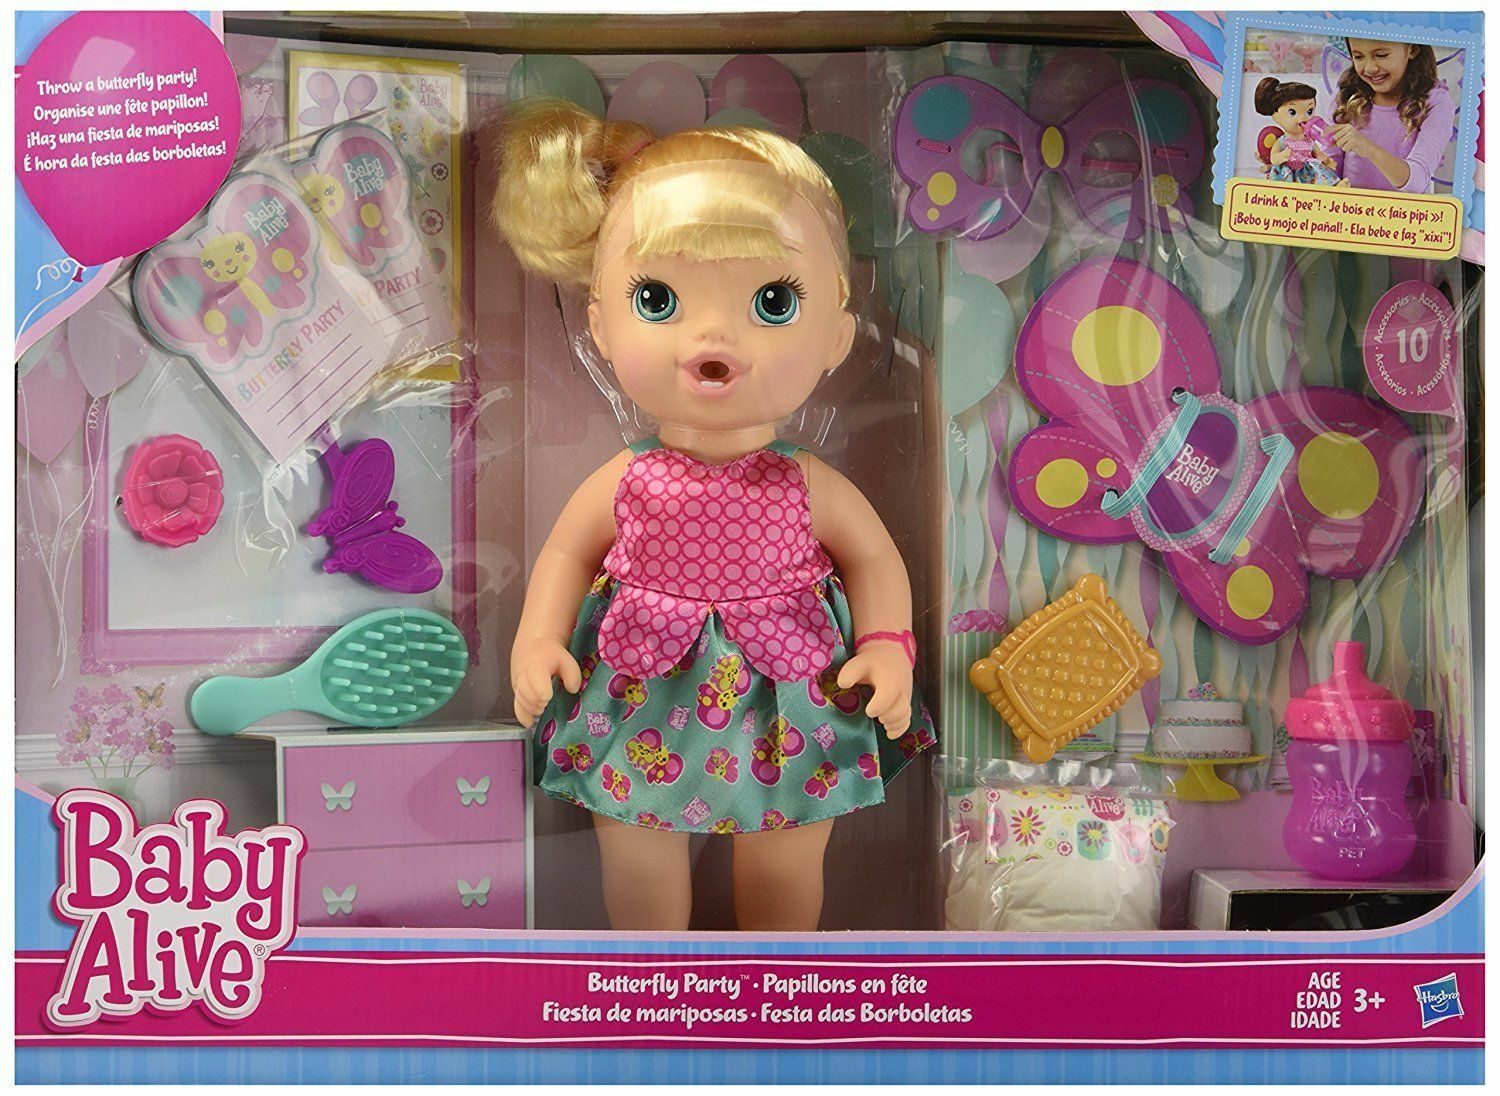 Baby Alive Dolls: Butterfly Party Blonde